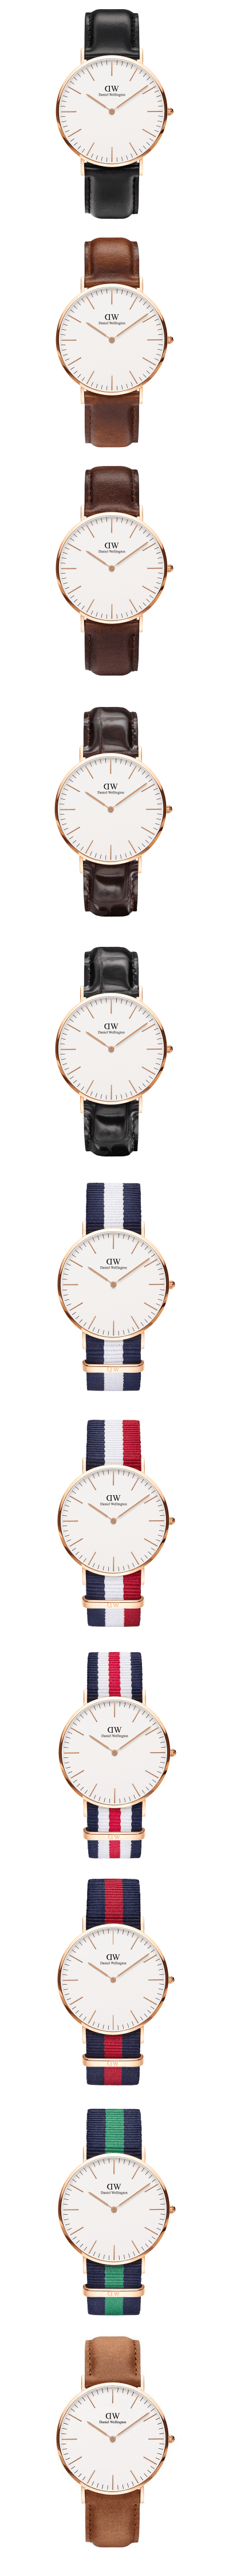 A set of #men's #watches about #classic men #style by #Daniel #Wellington…